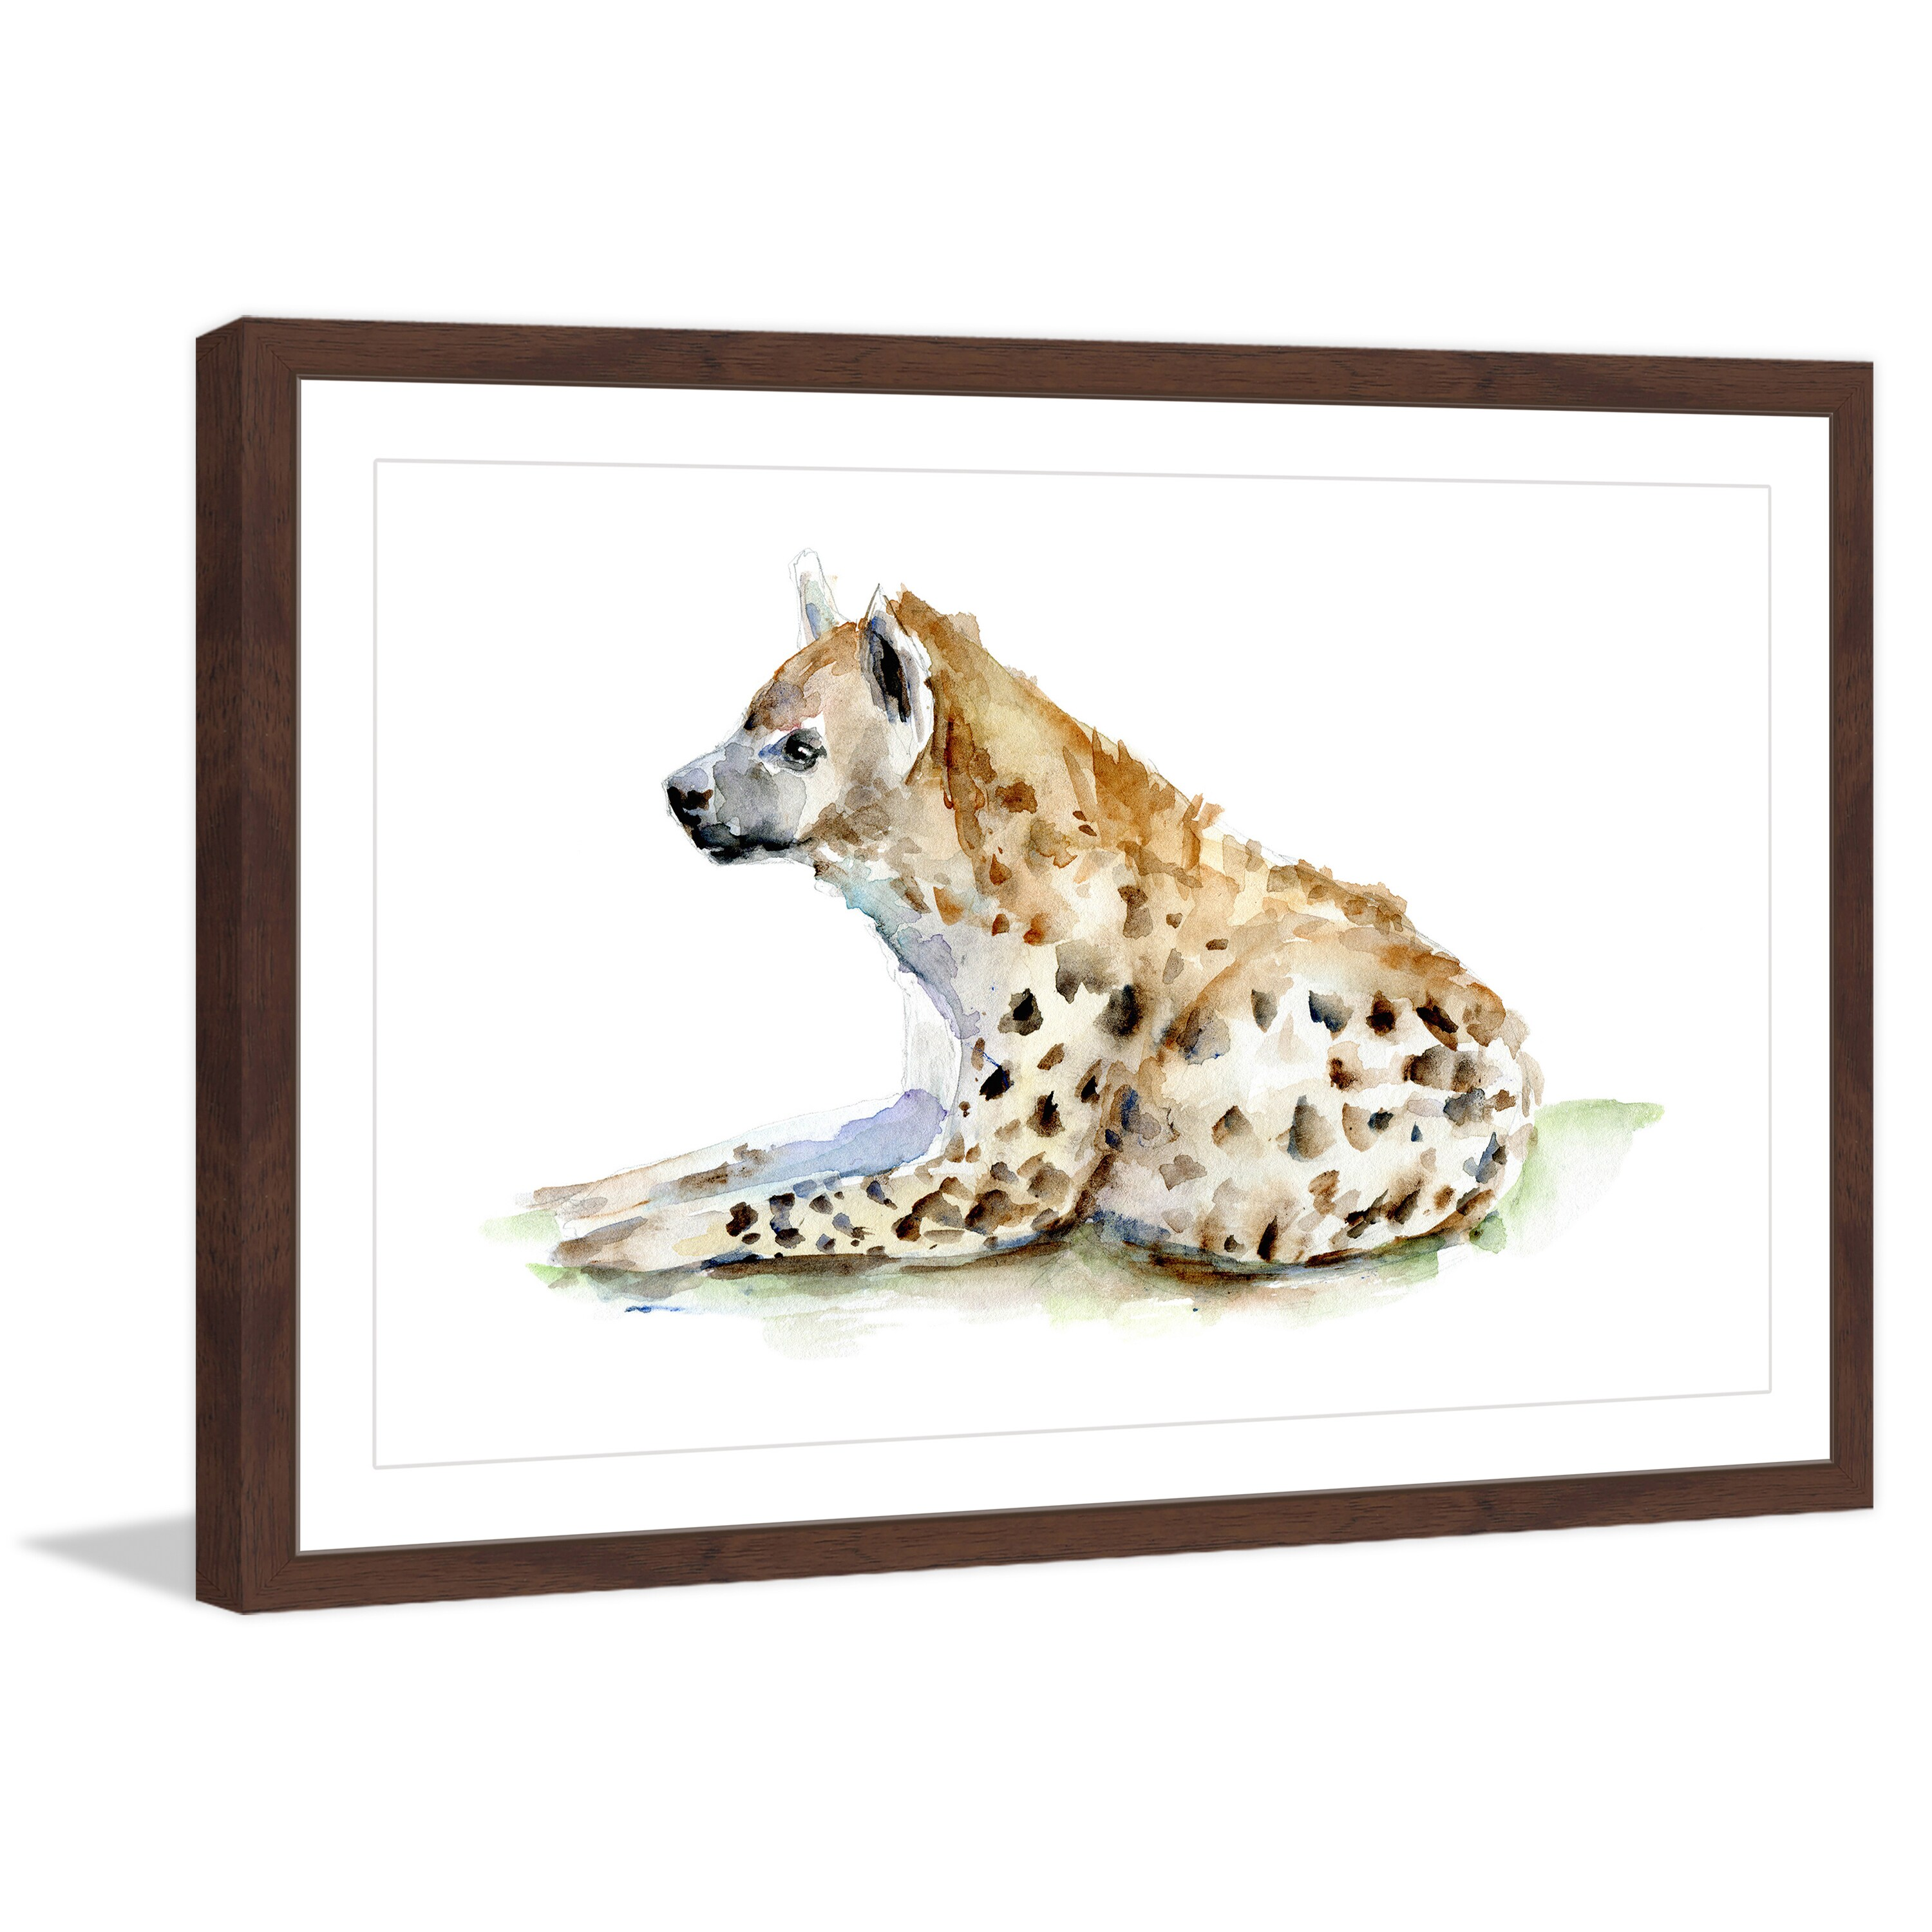 Marmont Hill Hyena' by Michelle Dujardin Framed Painting Print (18 x 12), Brown, Size Medium (Aluminum)